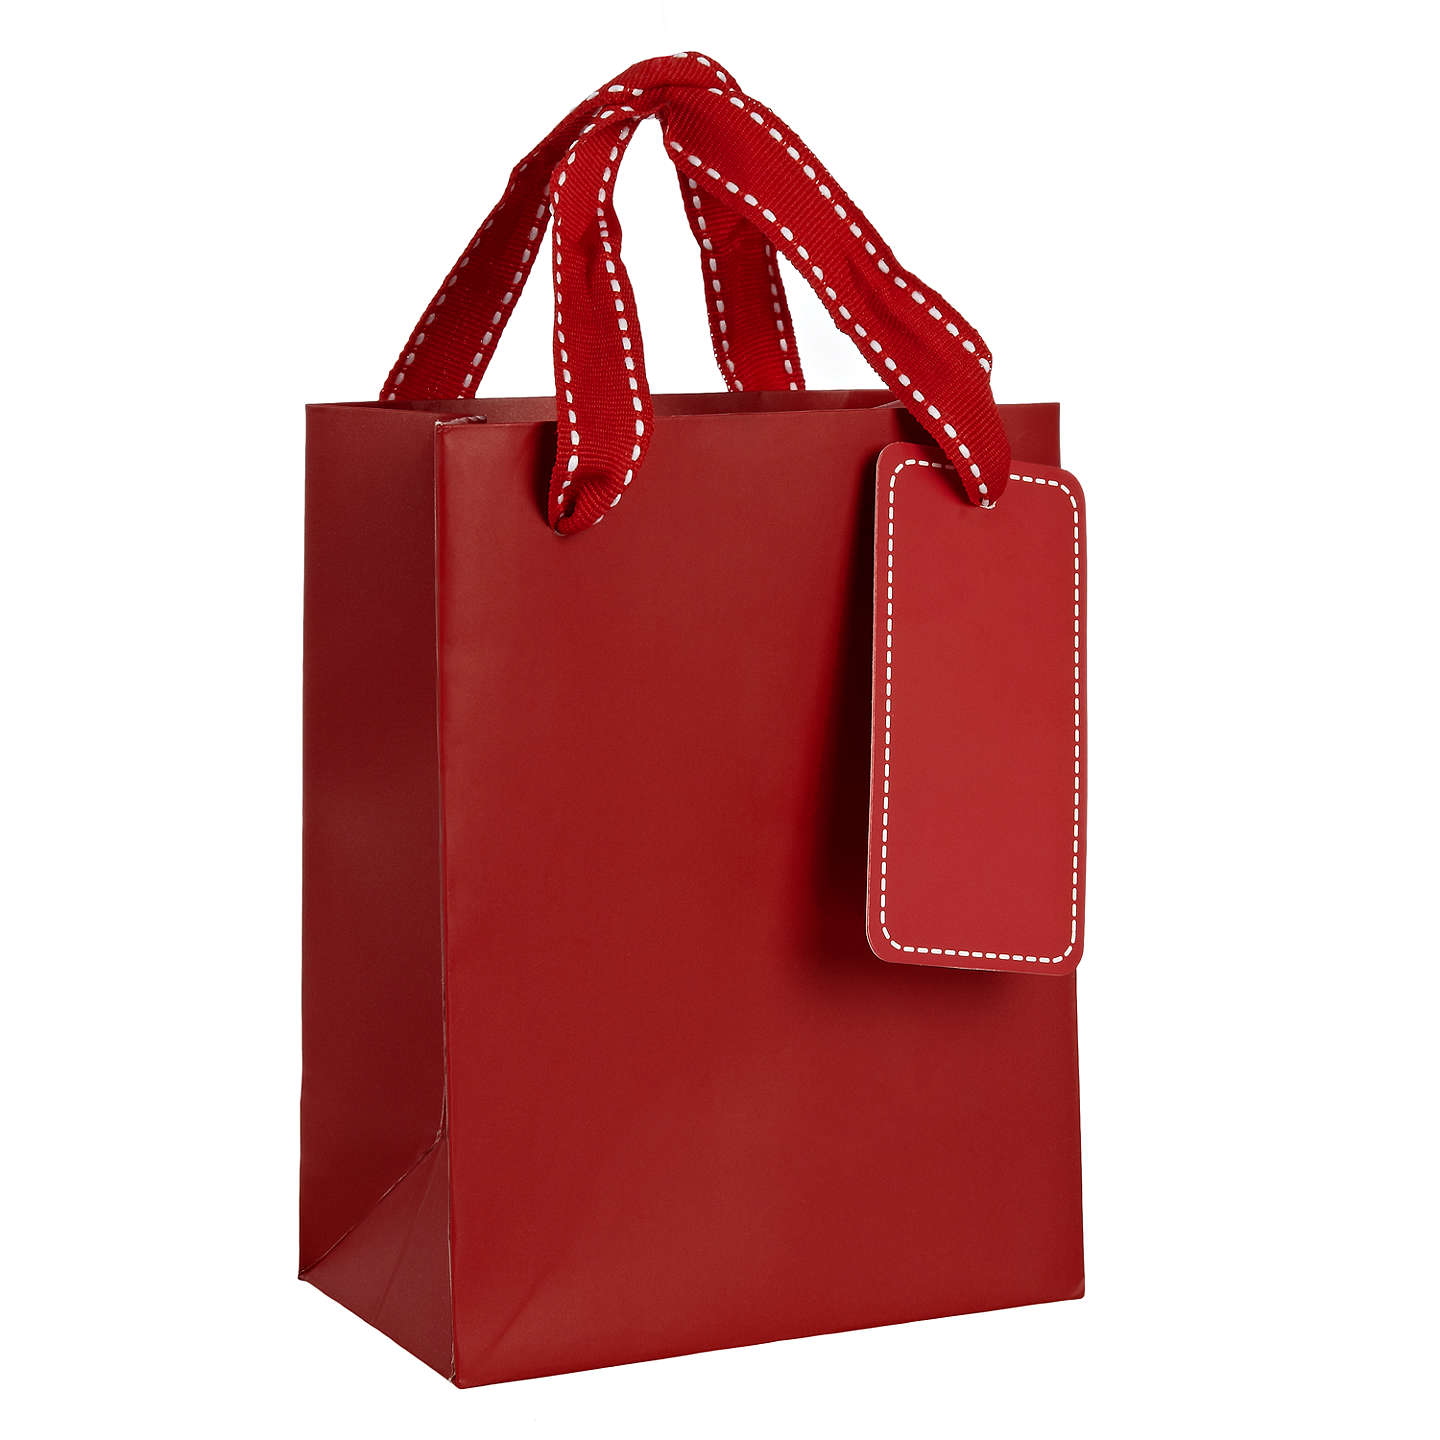 Offer john lewis gift bag red small at